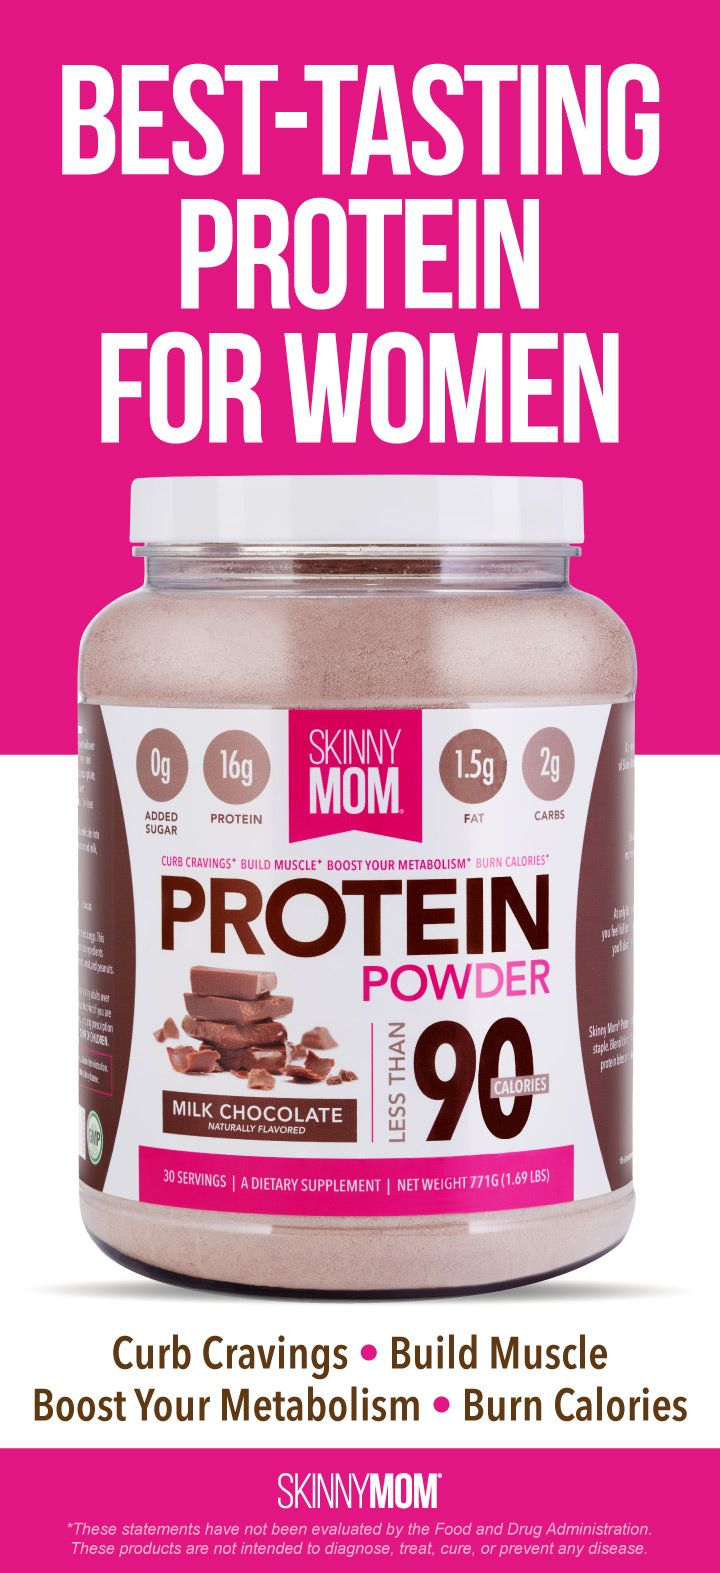 The best-tasting protein powder for women. Curb your cravings cravings, build lean muscle, boost your metabolism, and lose weight!